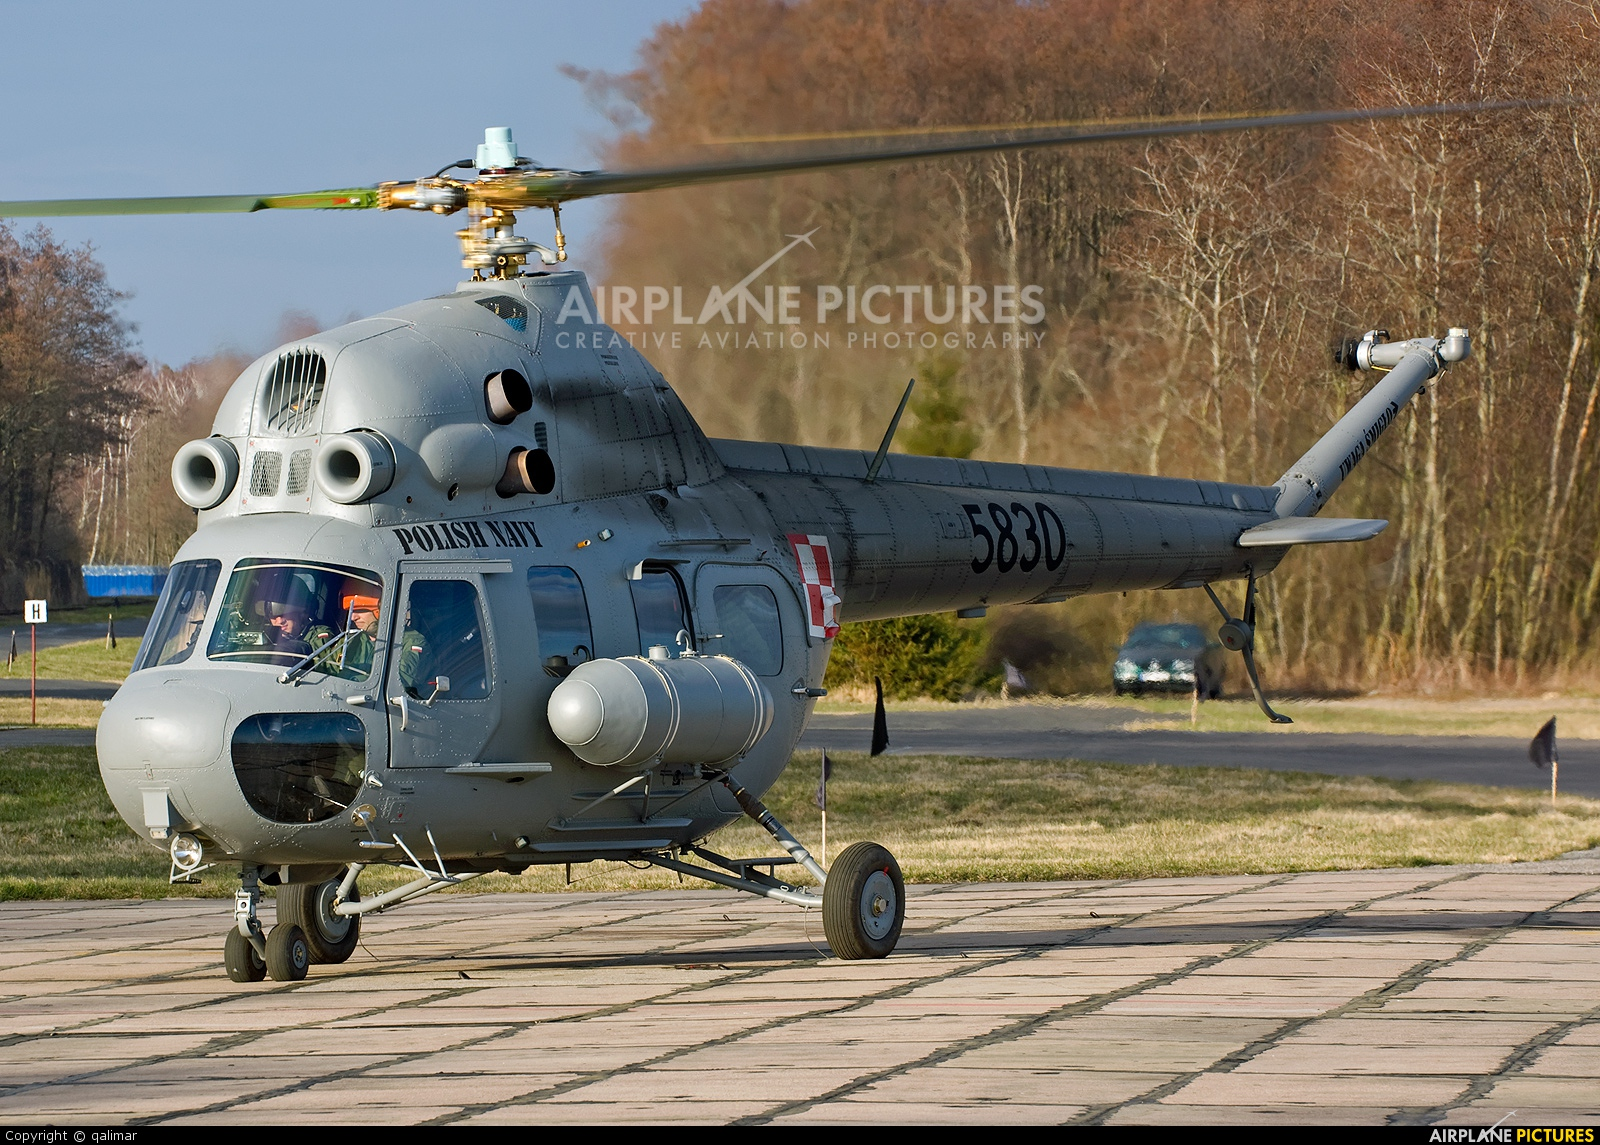 Poland - Navy 5830 aircraft at Undisclosed location